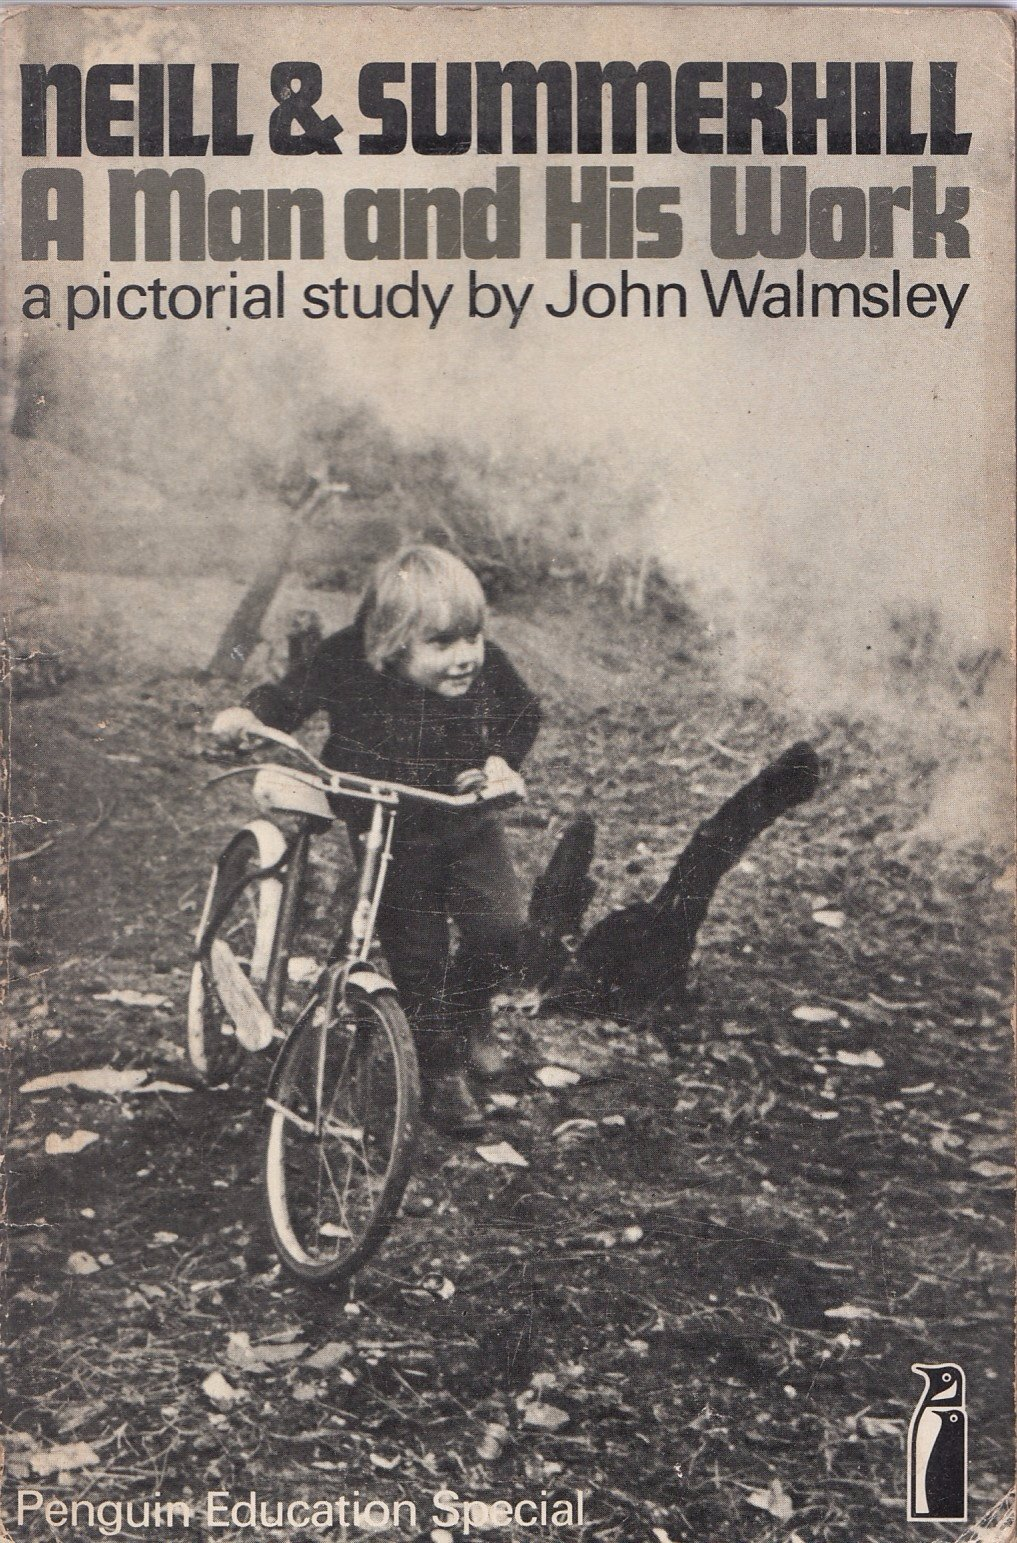 Image for Neill & Summerhill: a man and his work: A pictorial study (Penguin education specials)